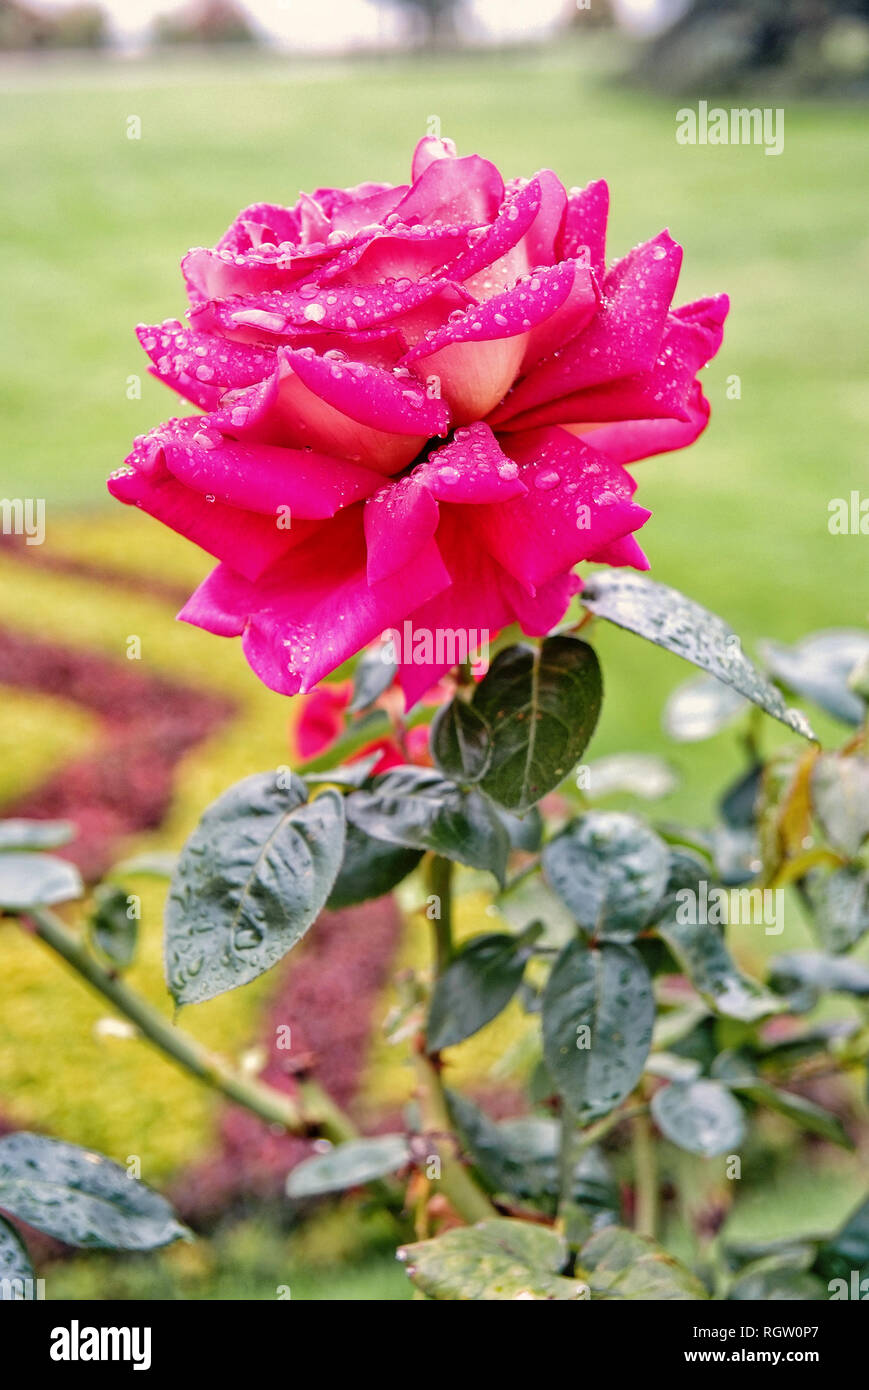 Rose Flower In Summer Garden Rose With Pink Petals Blossoming On